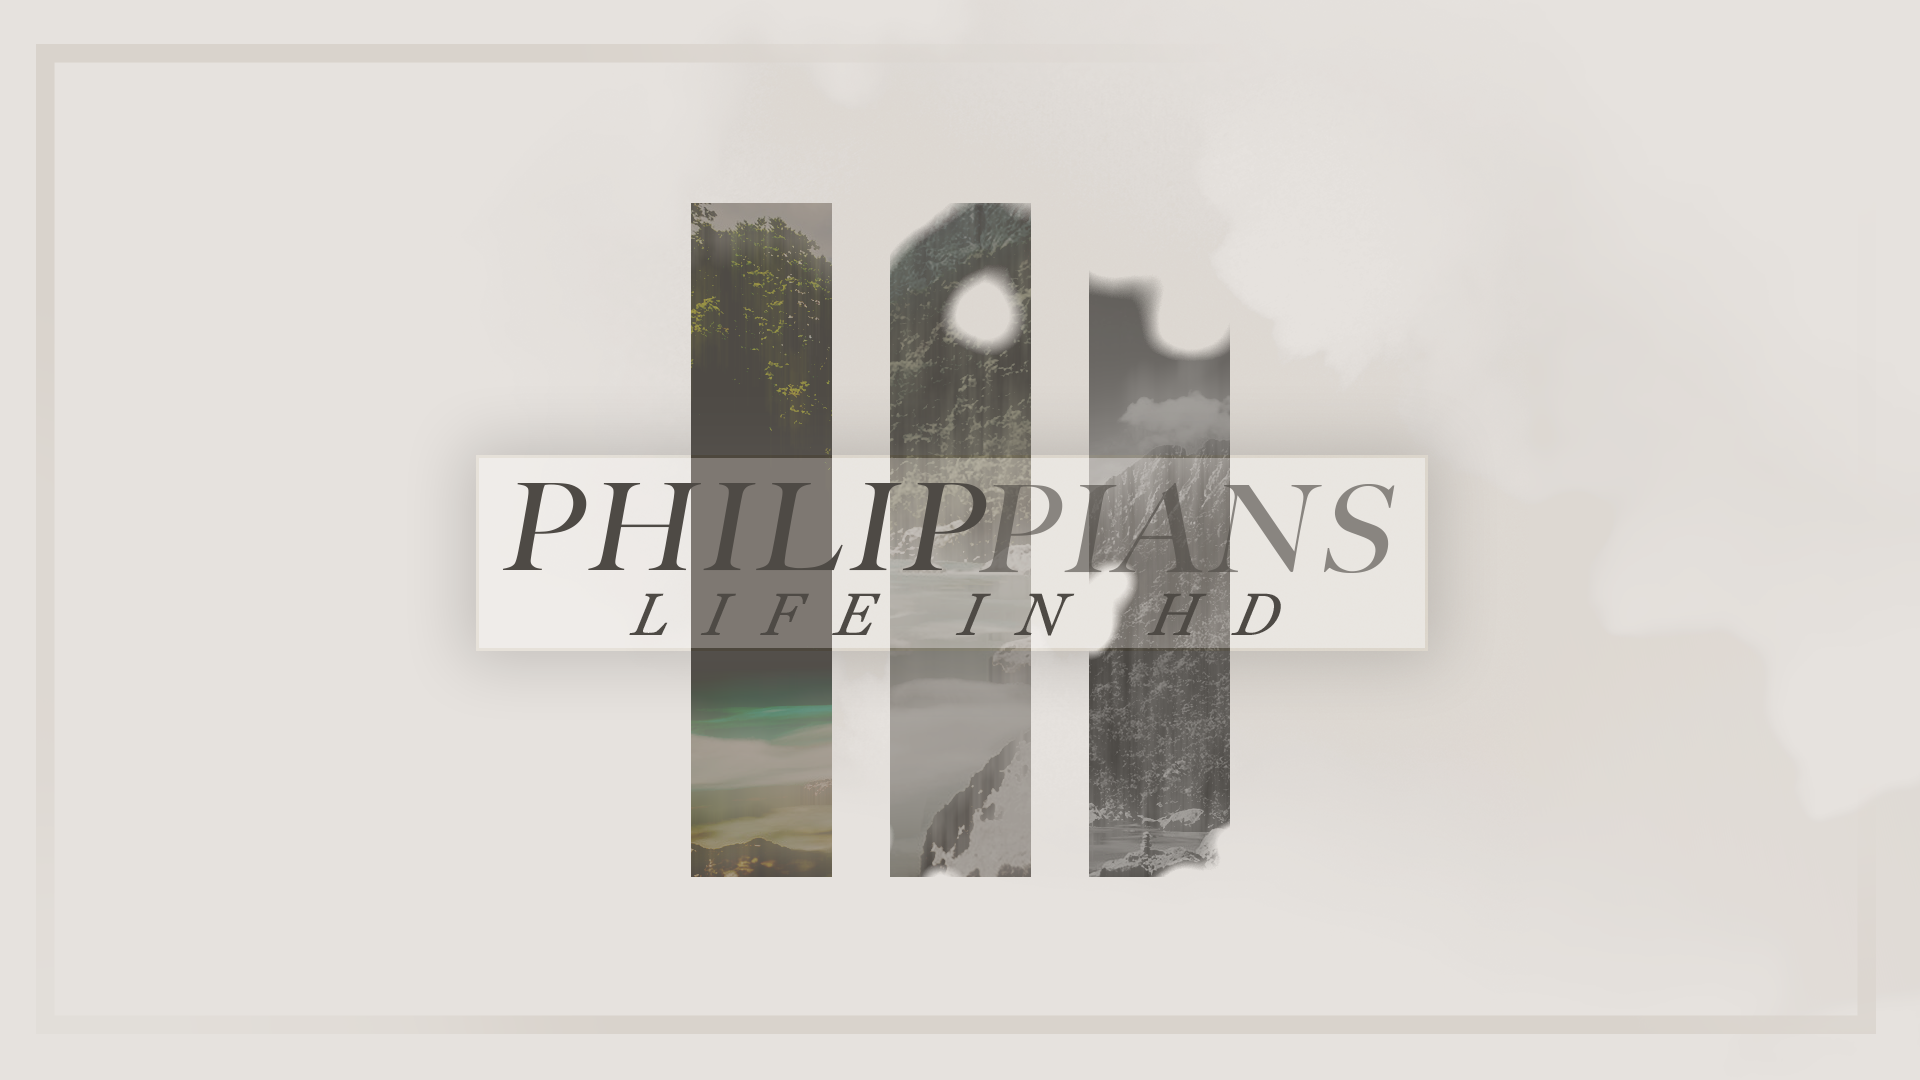 Philippians-Fulldesign.png